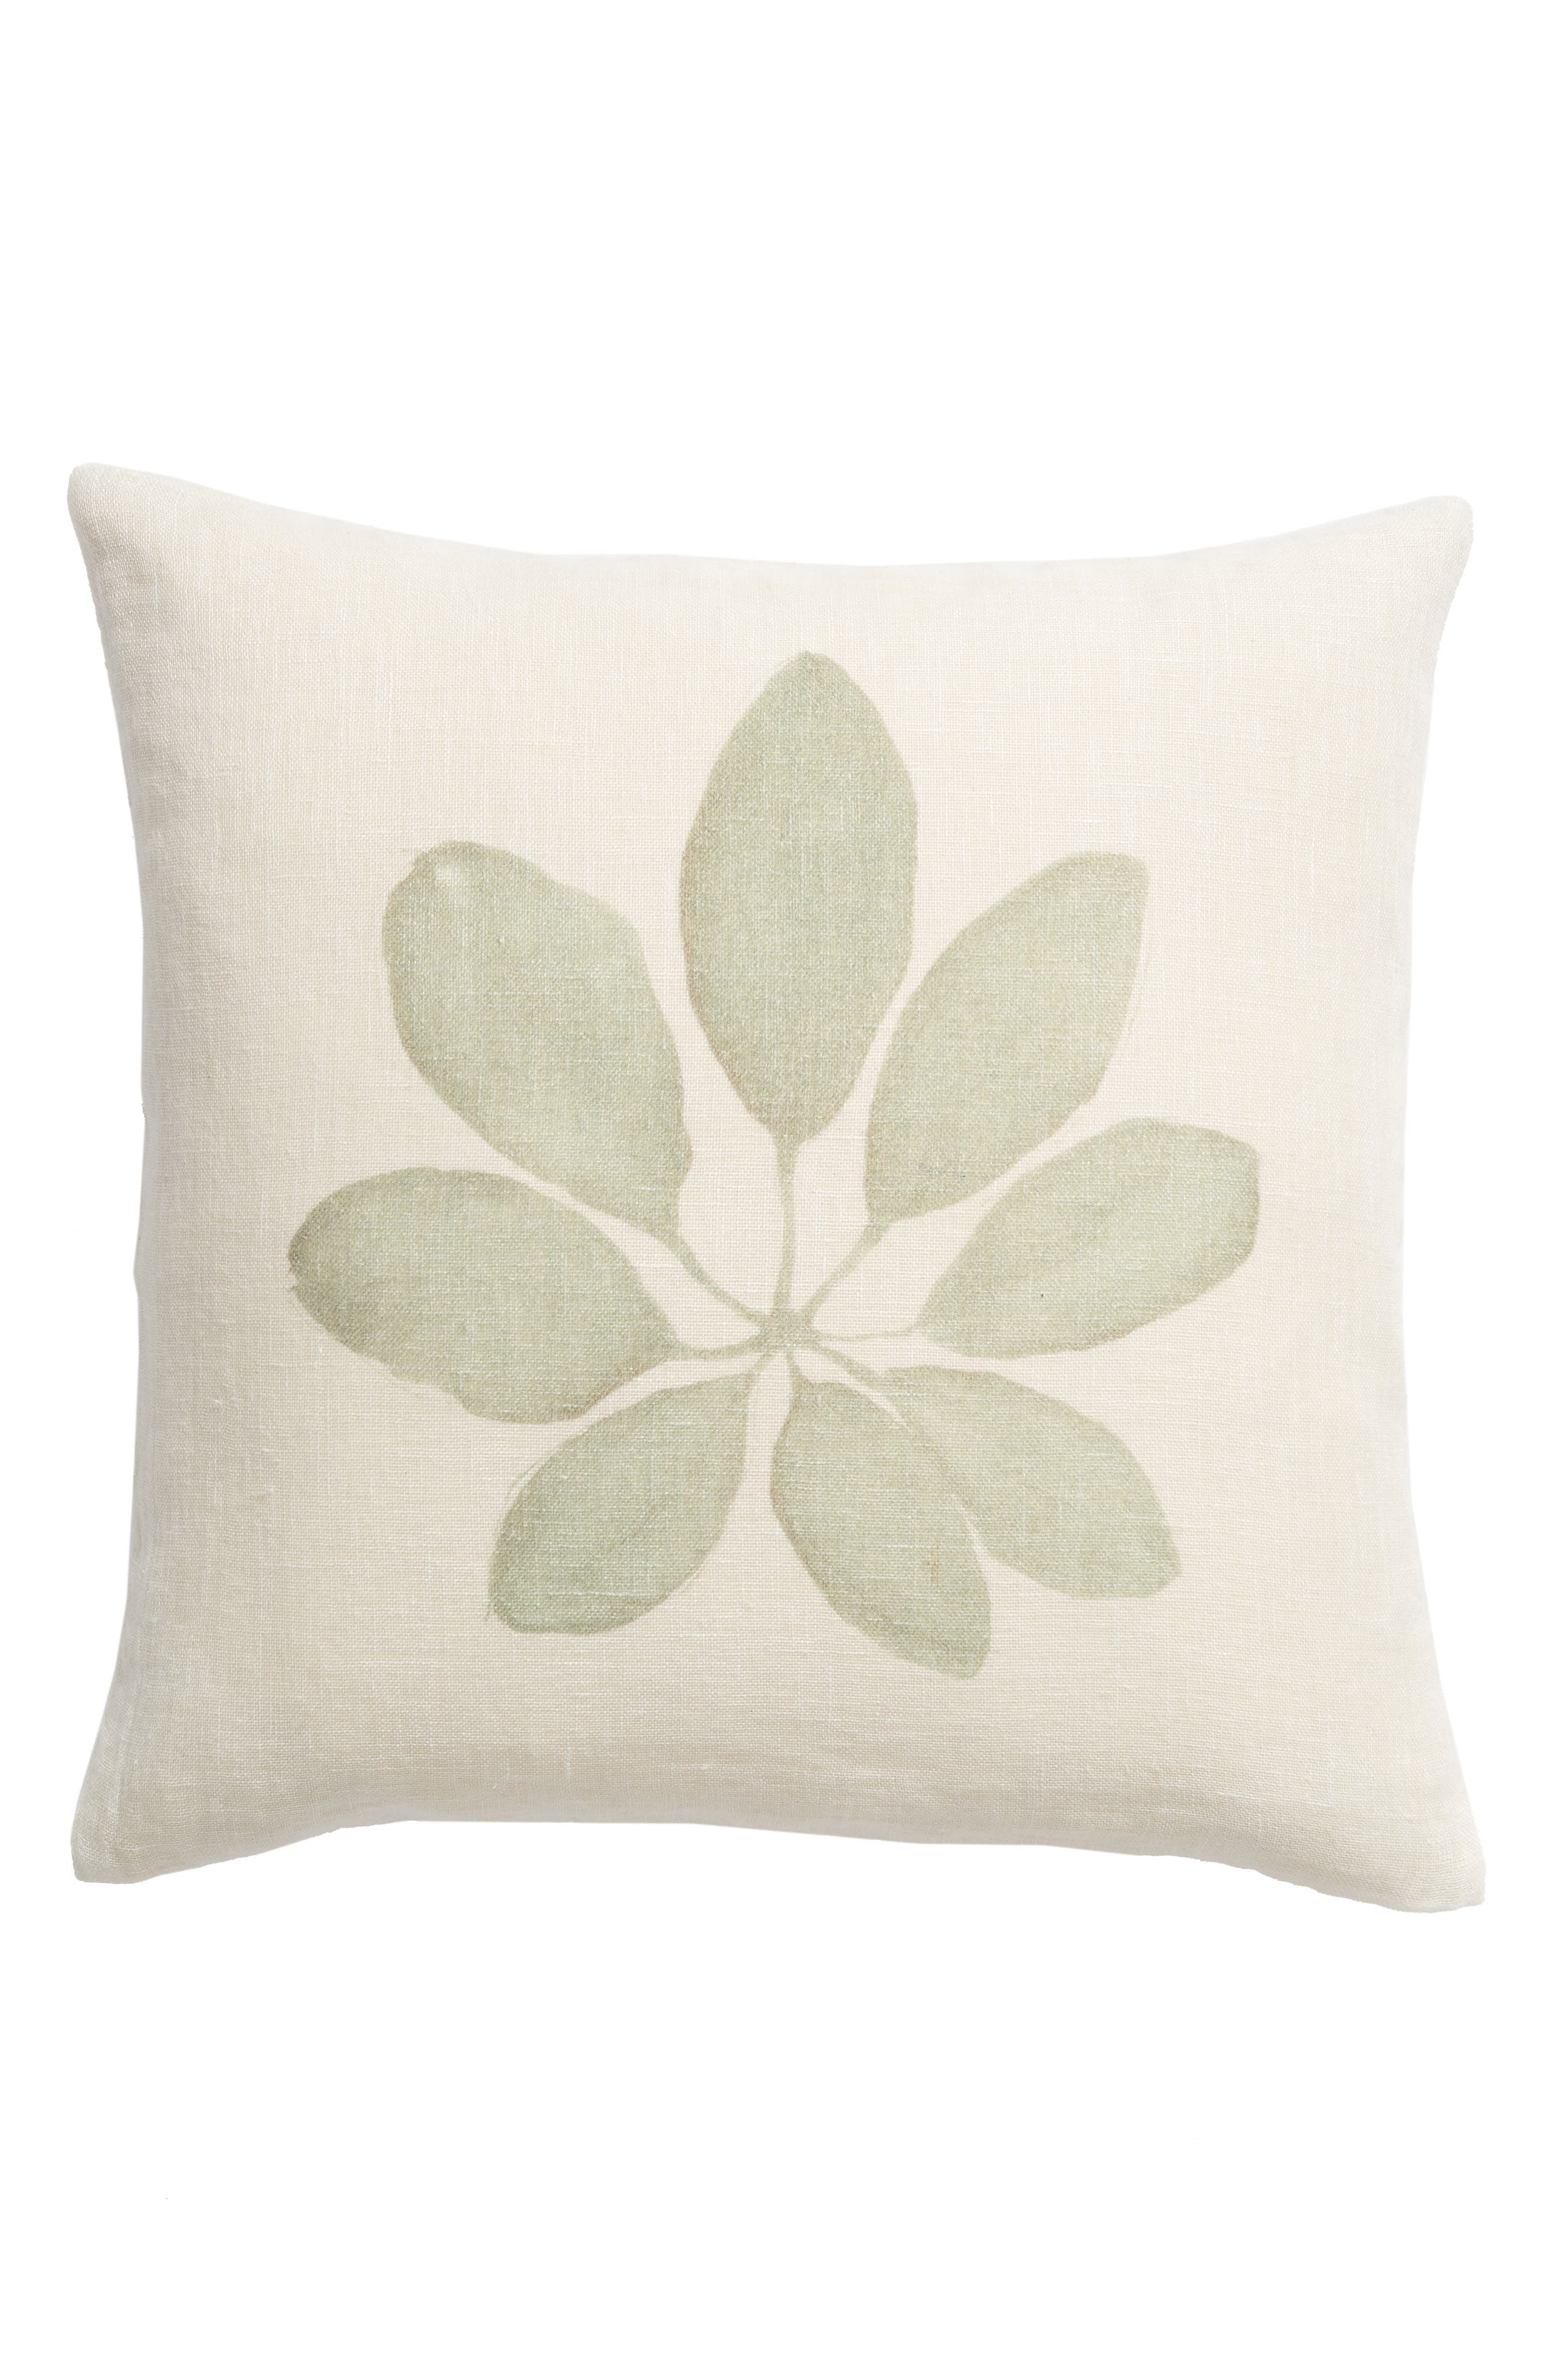 TREASURE & BOND Leaf Accent Pillow, Main, color, GREEN SHORE MULTI